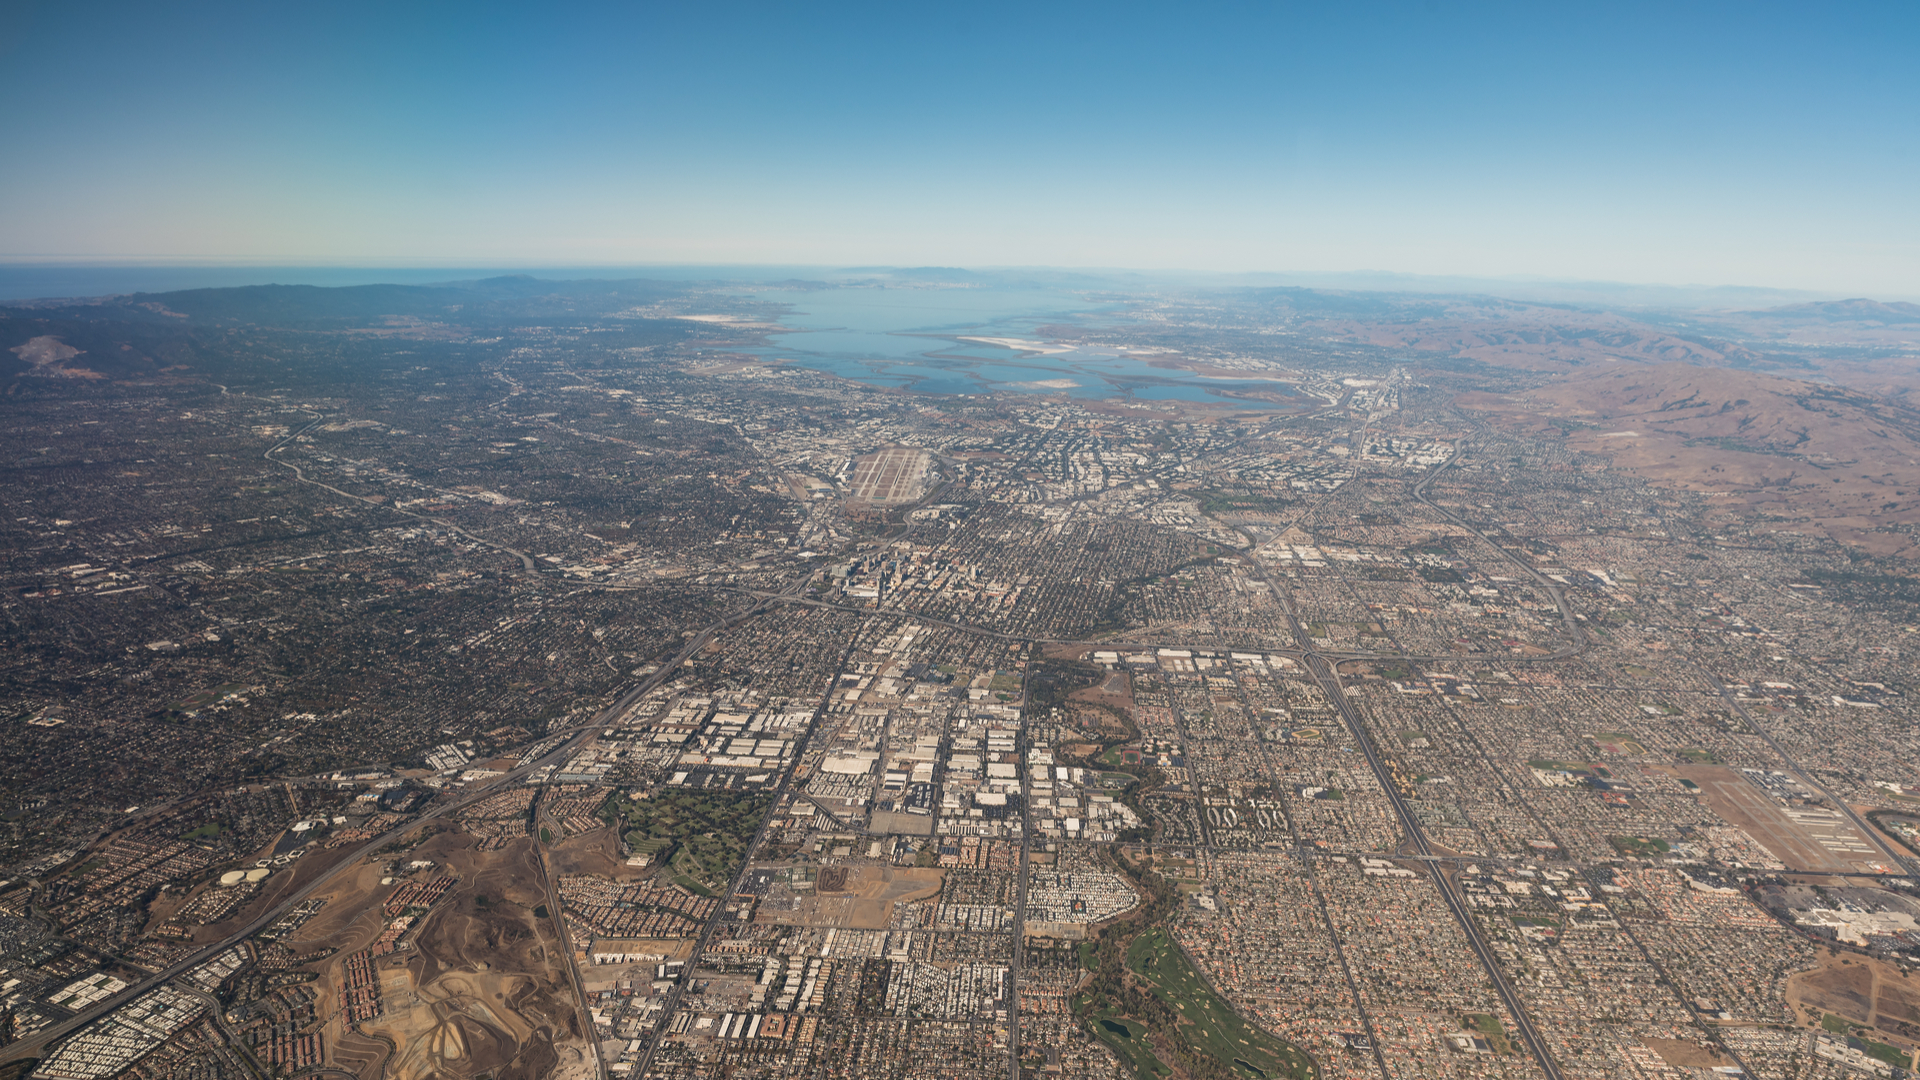 development of silicon valley Silicon valley (abbreviated as sv) is a region in the southern san francisco bay area of northern california, referring to the santa clara valley, which serves as the global center for high technology, innovation and social media.